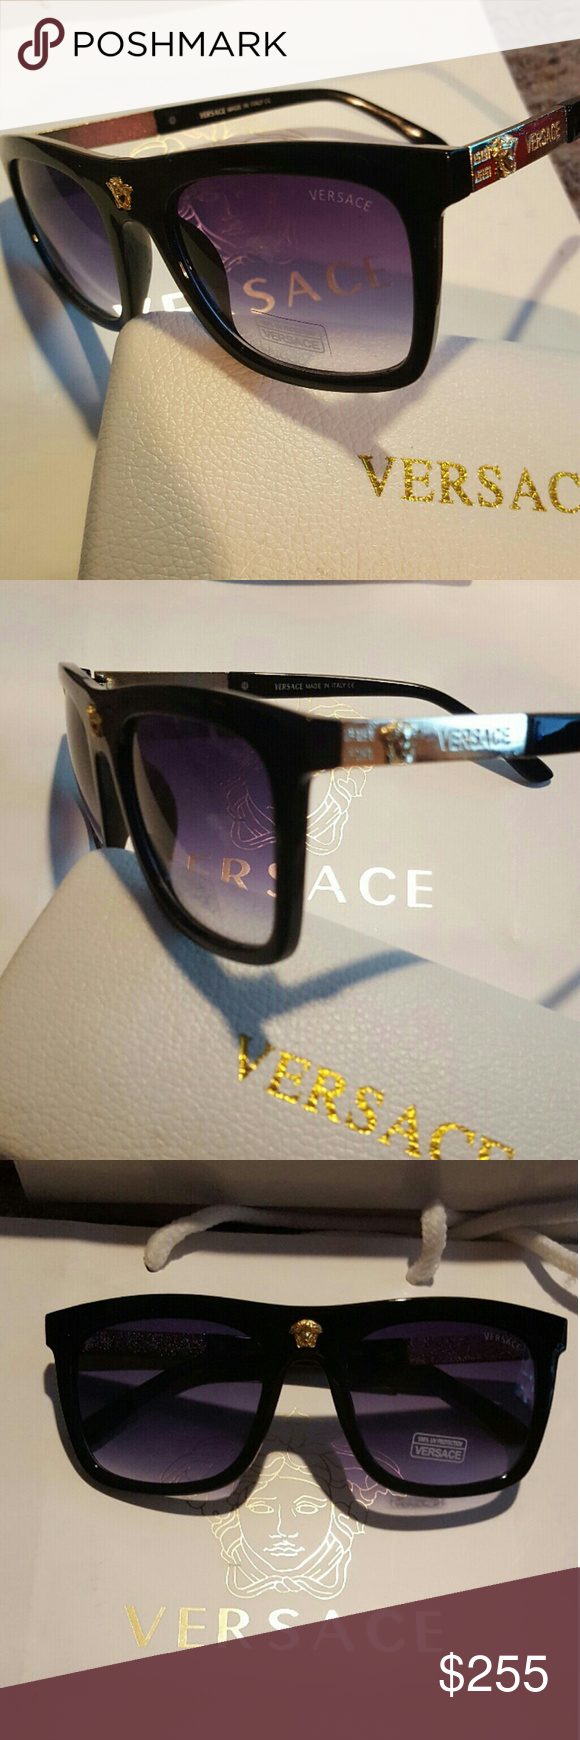 859e1b9e47674 Comes with Versace case. Tags and Accessories Brand new Versace Accessories  Sunglasses